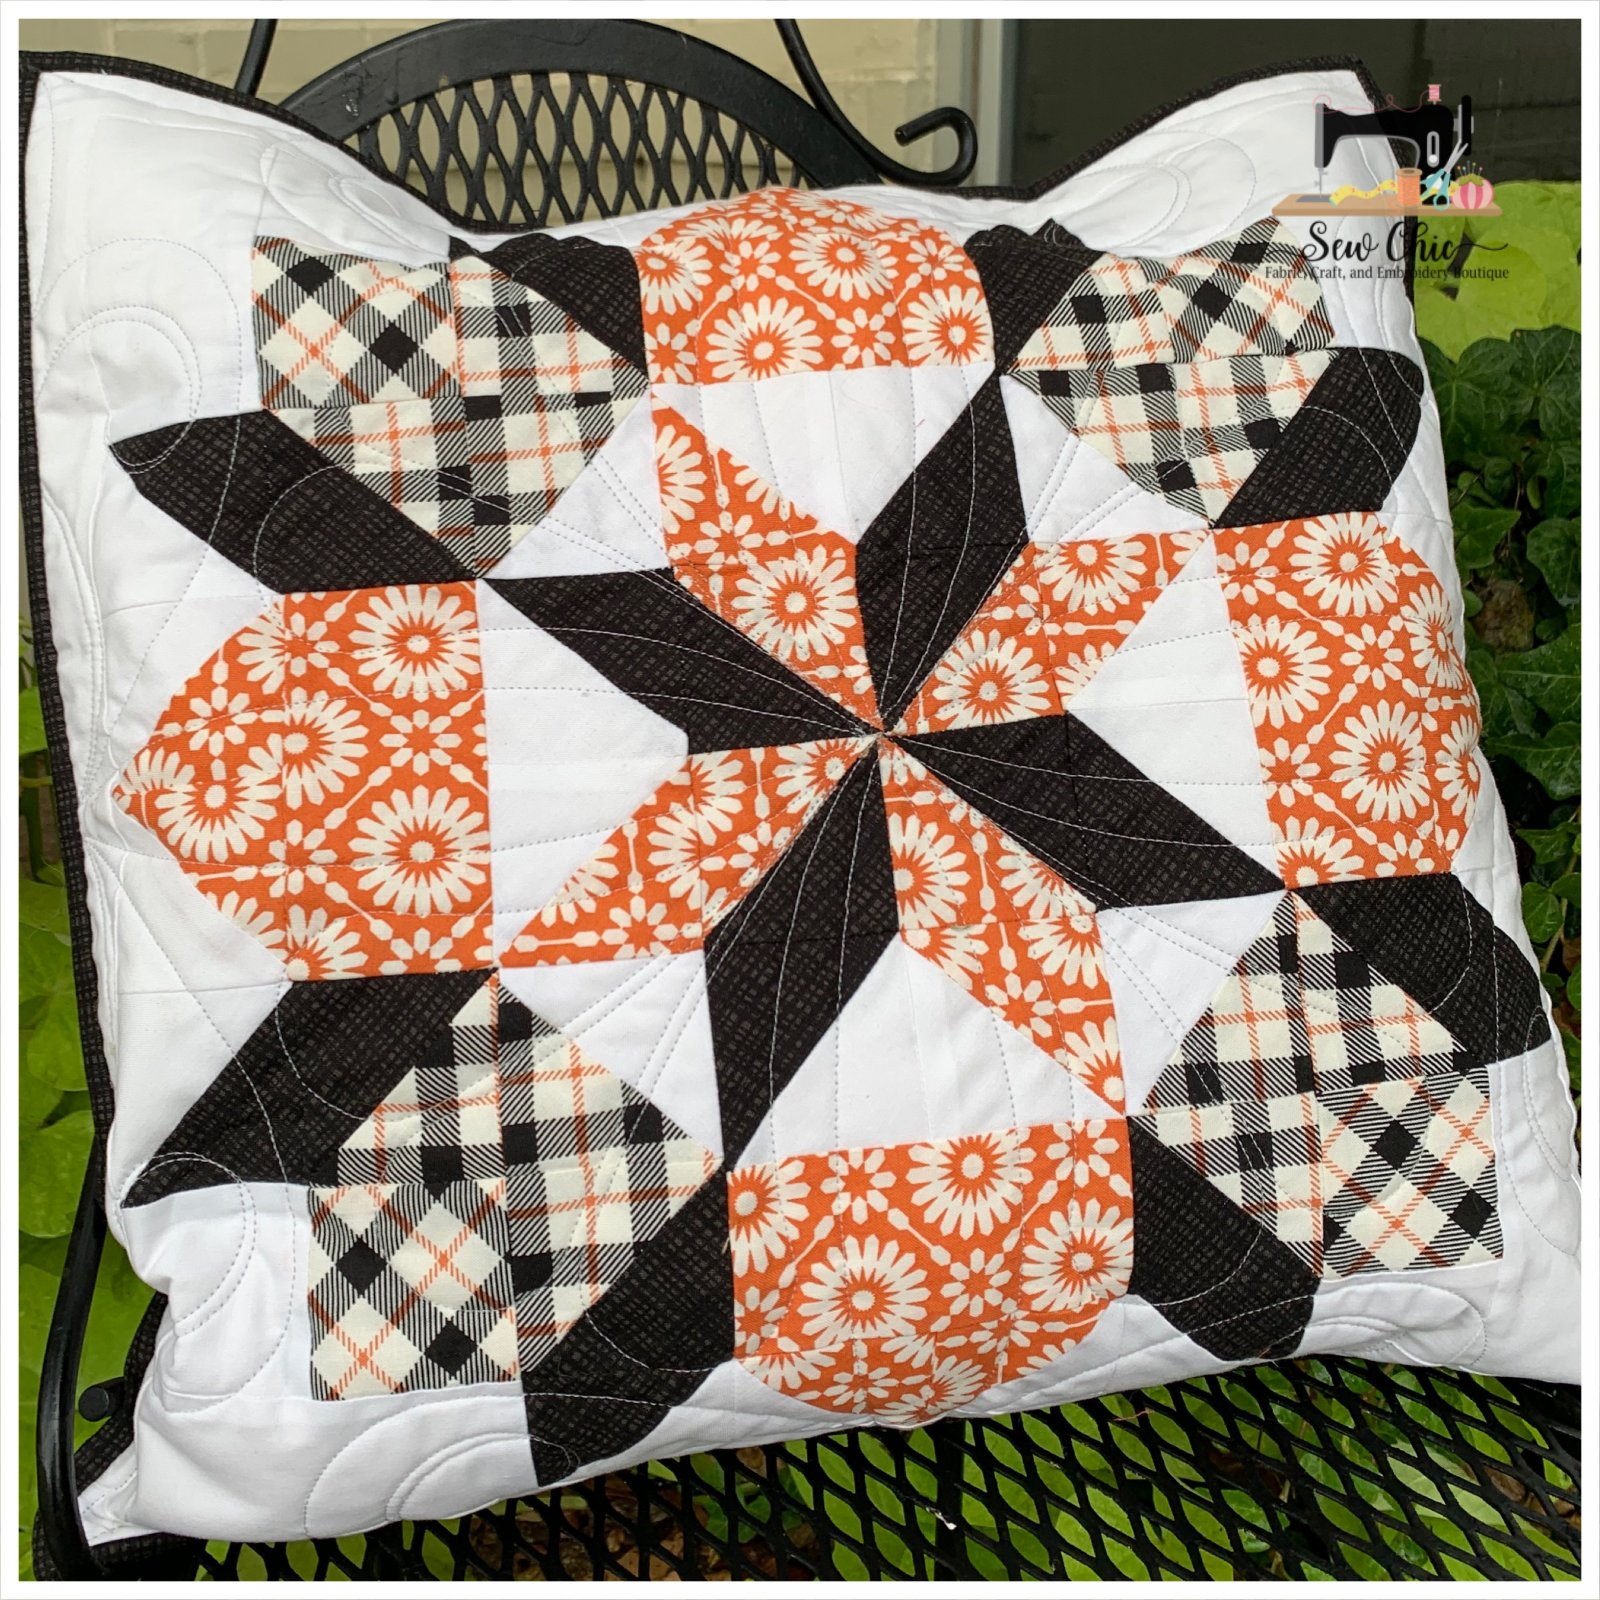 Dutch Rose Halloween Pillow Kit